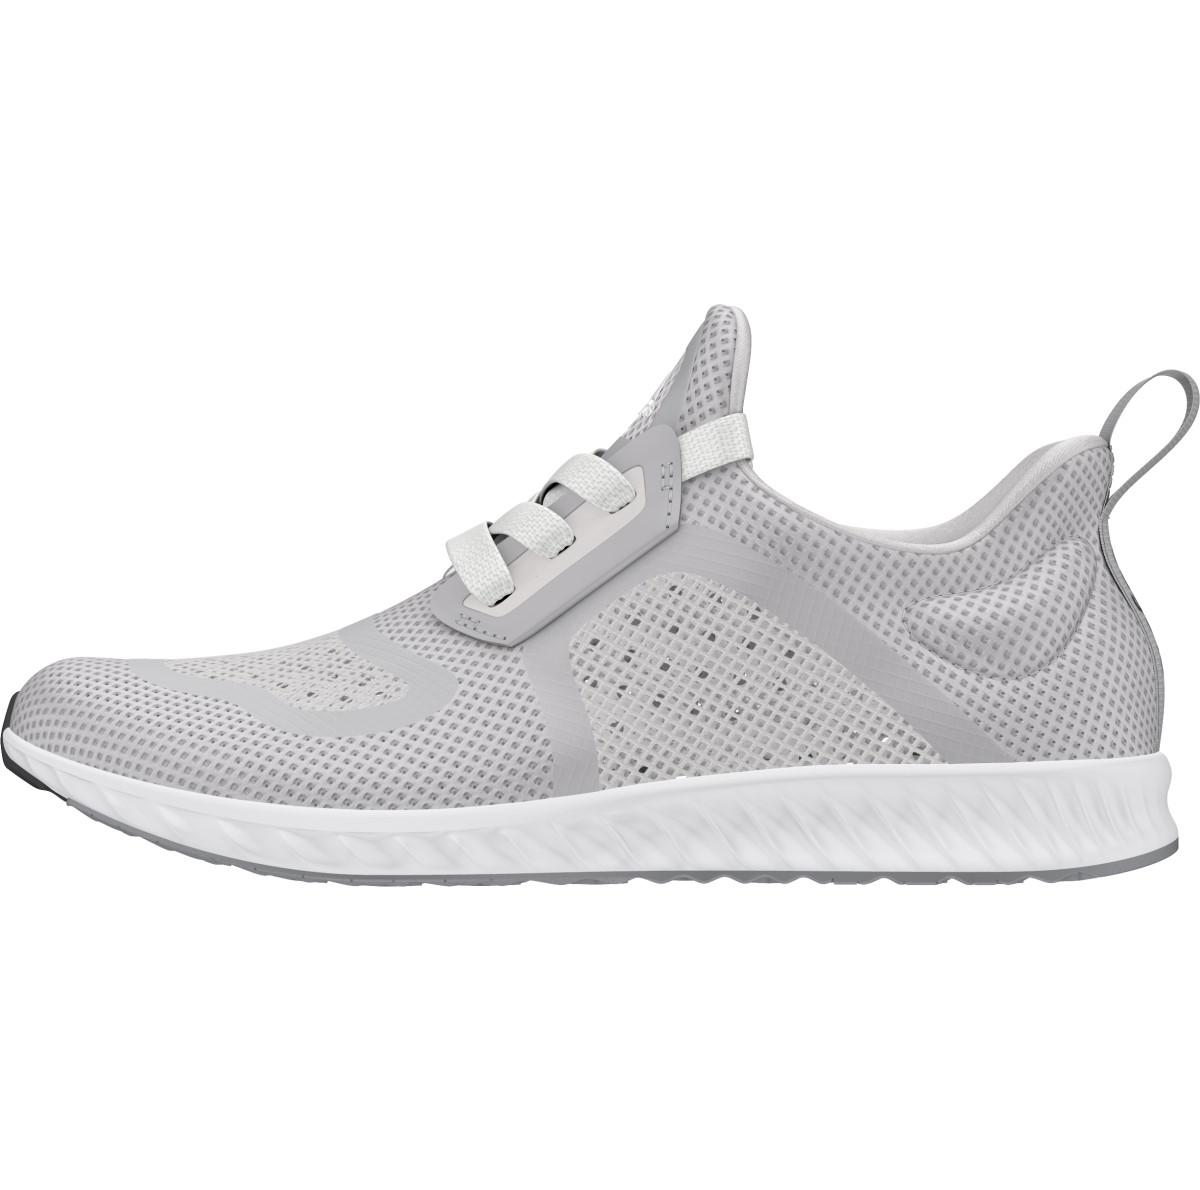 7dcc2fd9a4be Lyst - Adidas Edge Lux Clima Grey Two grey Two whitin in Gray